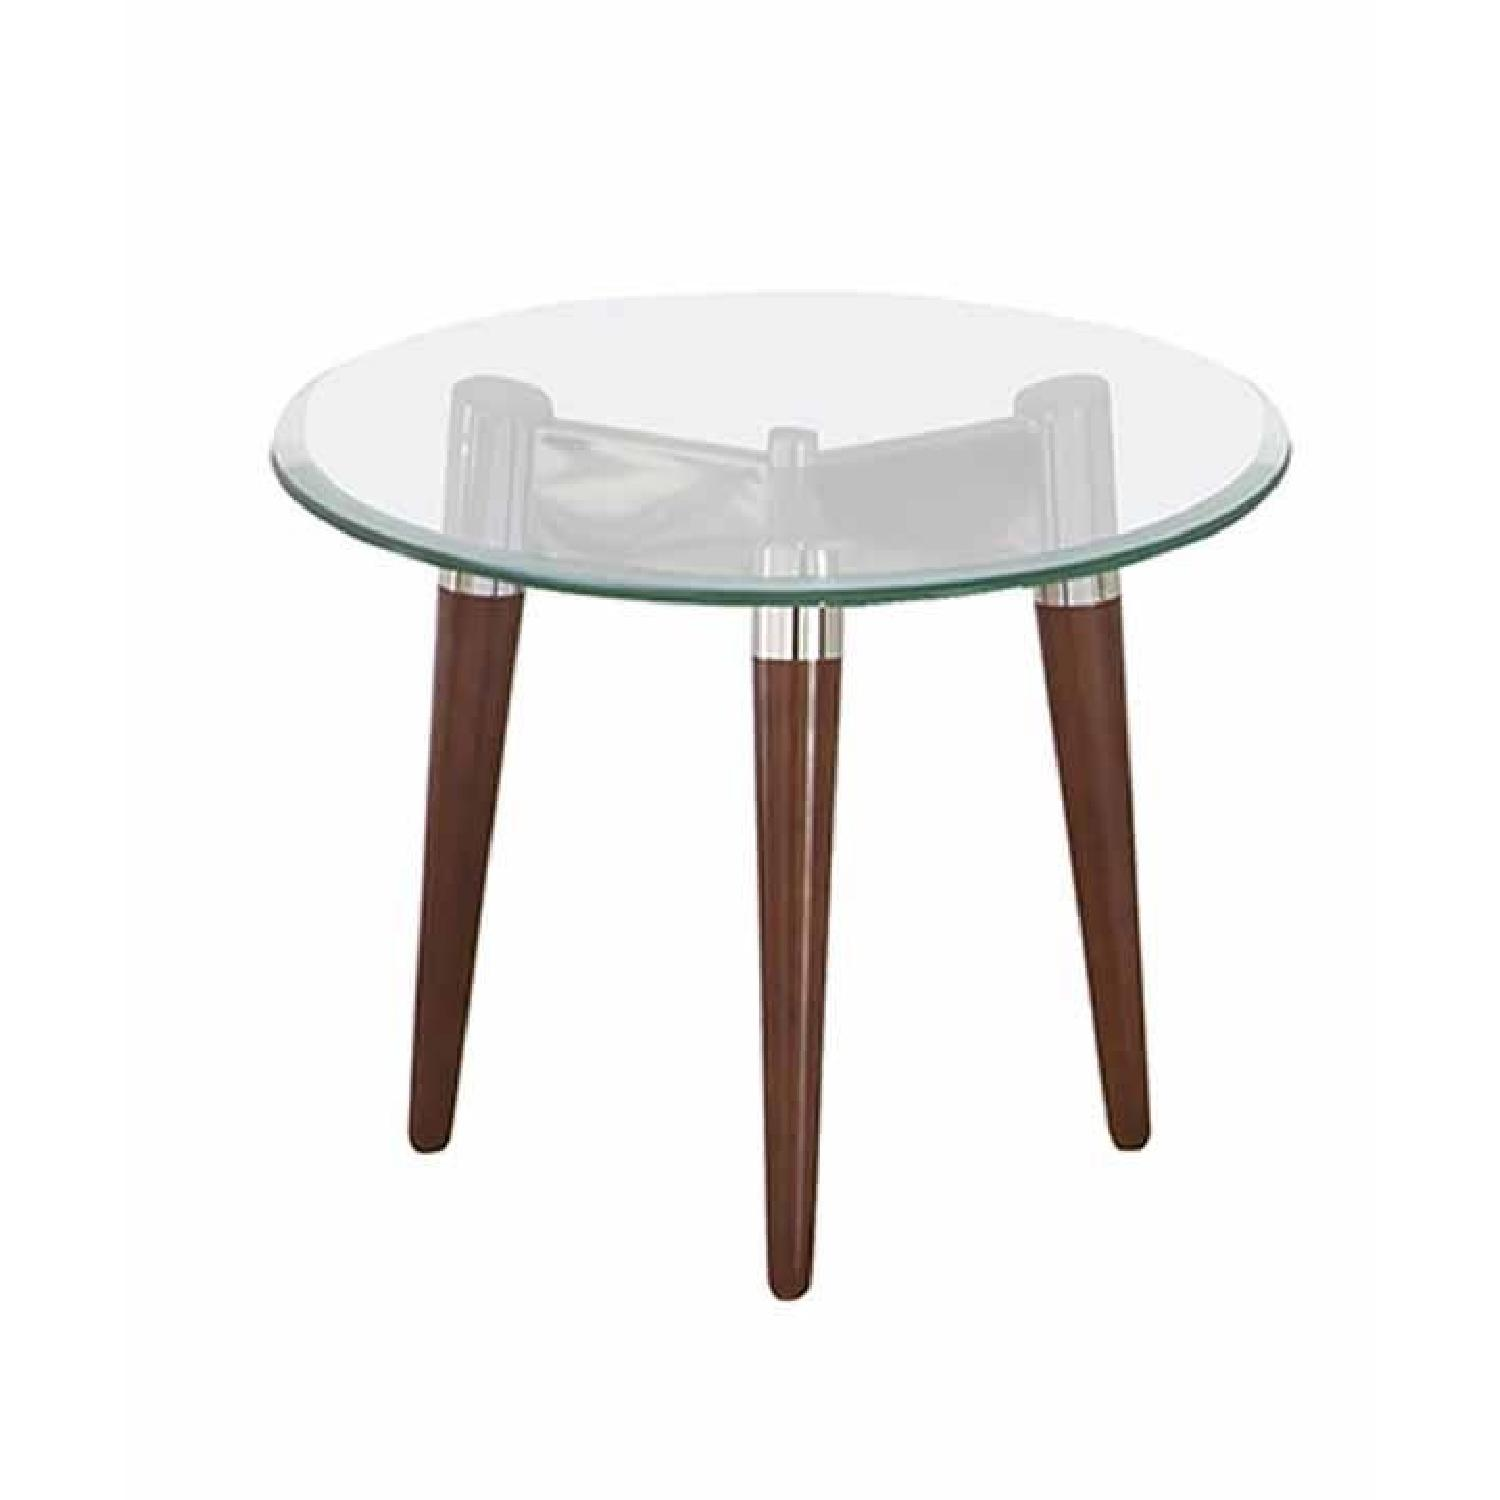 Retro Modern Style End Table w Round Beveled Tempered  : 1500 1500 frame 0 from www.aptdeco.com size 1500 x 1500 jpeg 65kB